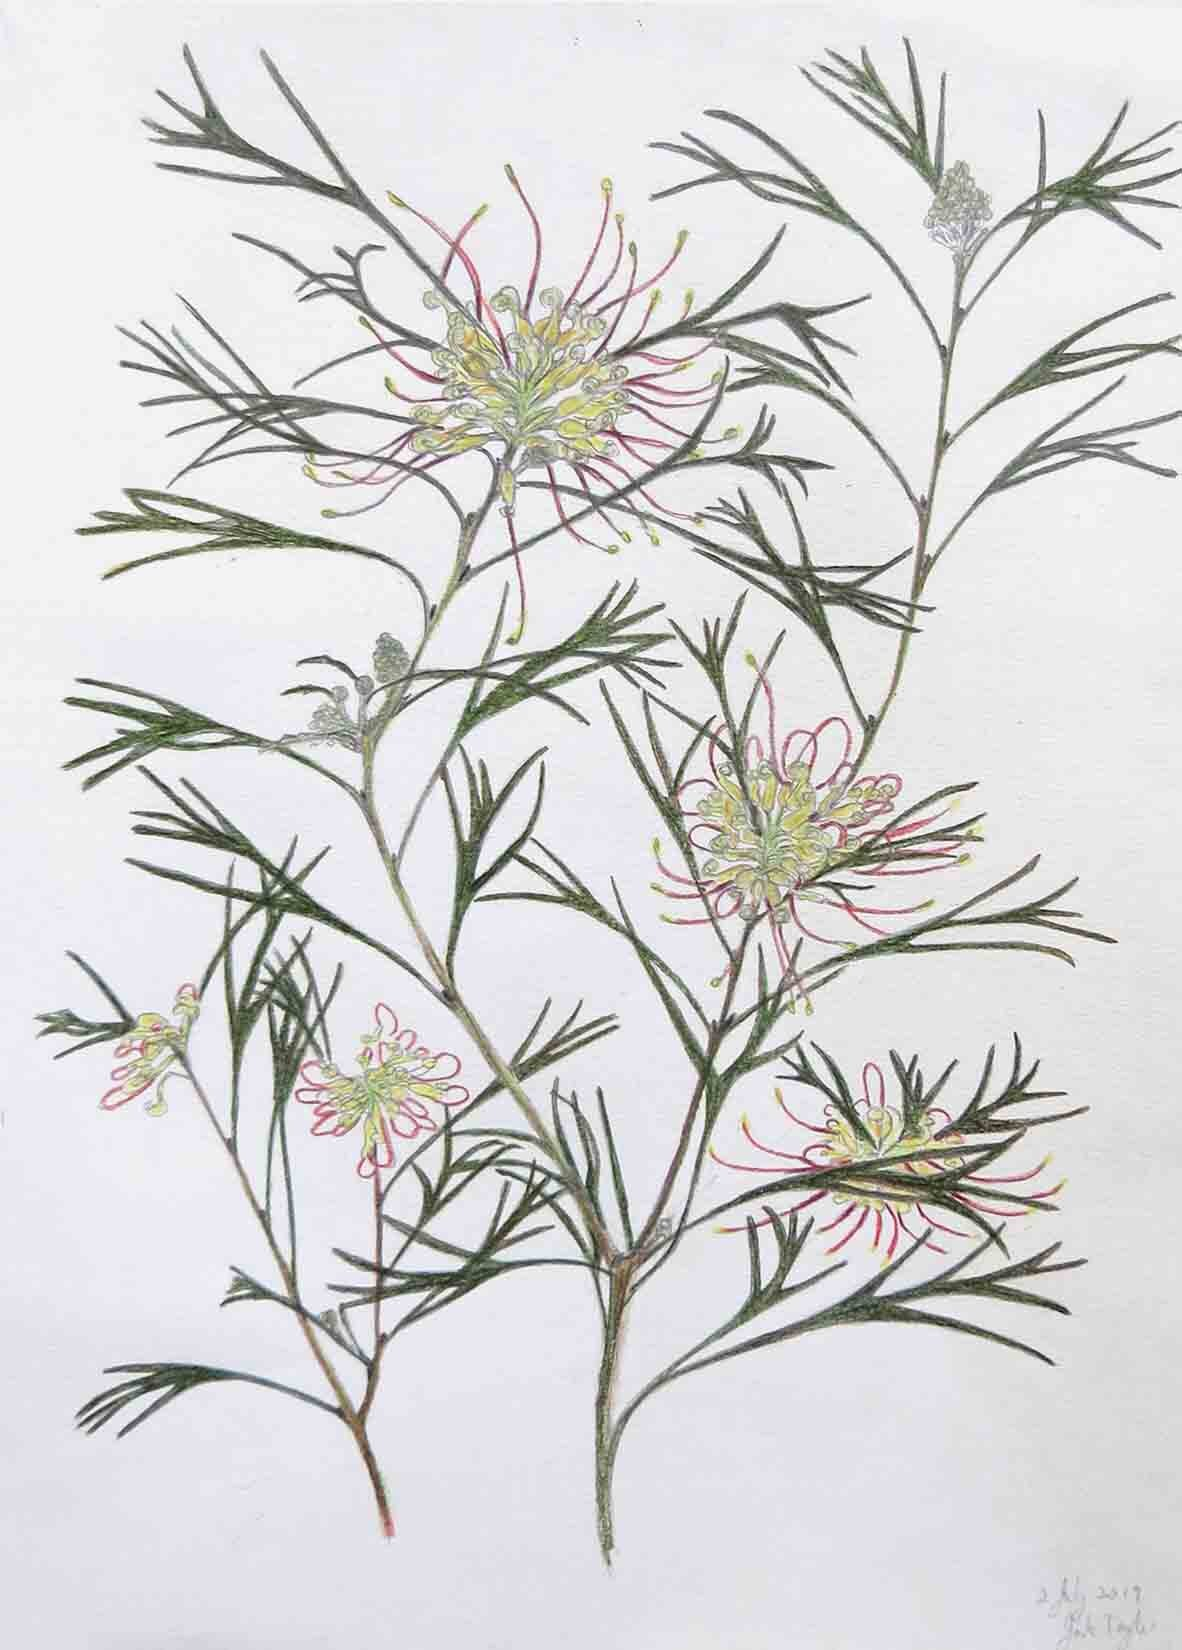 14. Jude Taylor, Grevillea Winpara Gold, 2019, colour pencil on paper, 42 x 30 cm NFS